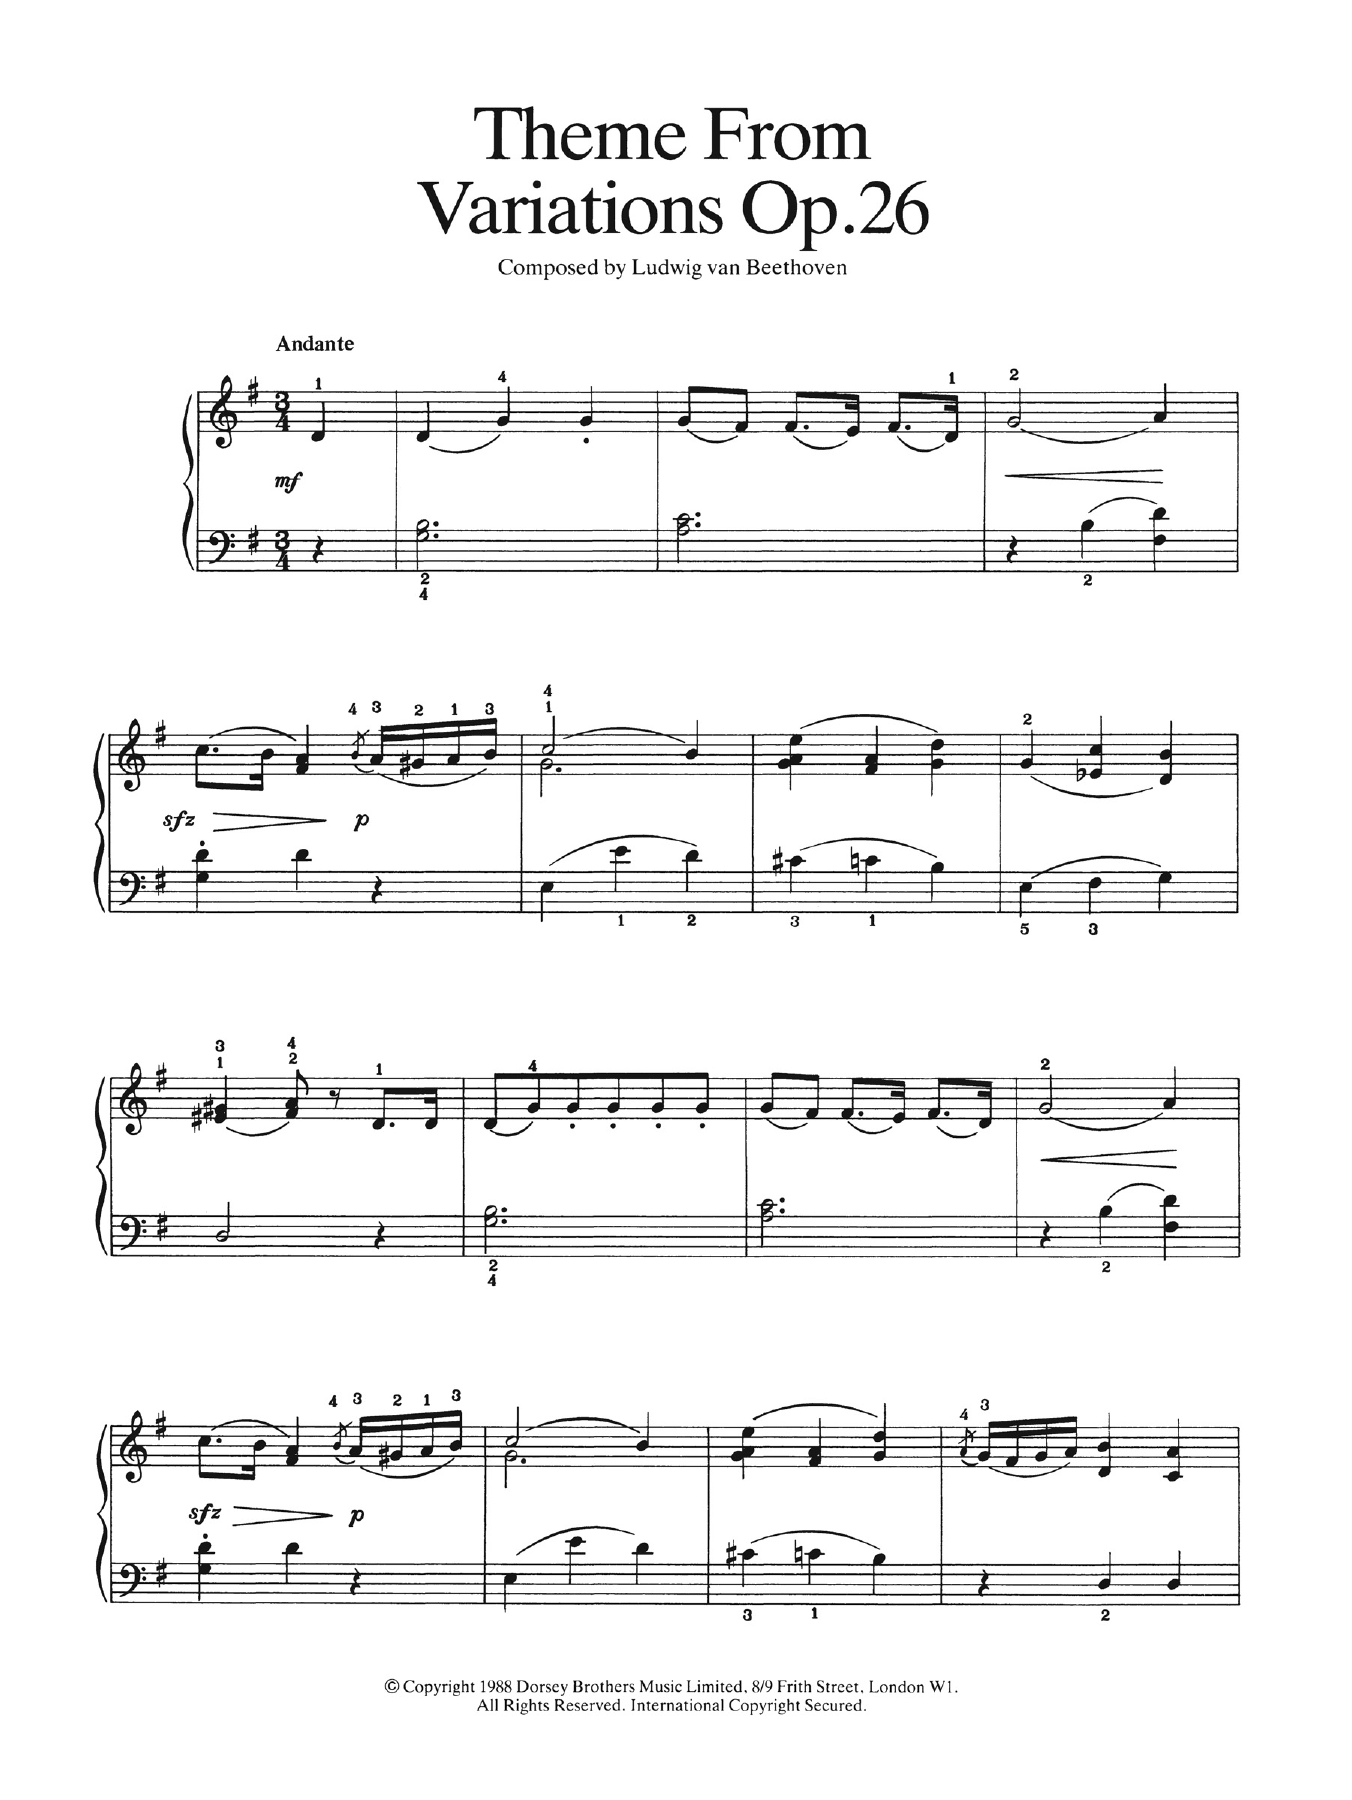 Theme from Variations Op. 26 Partituras Digitales